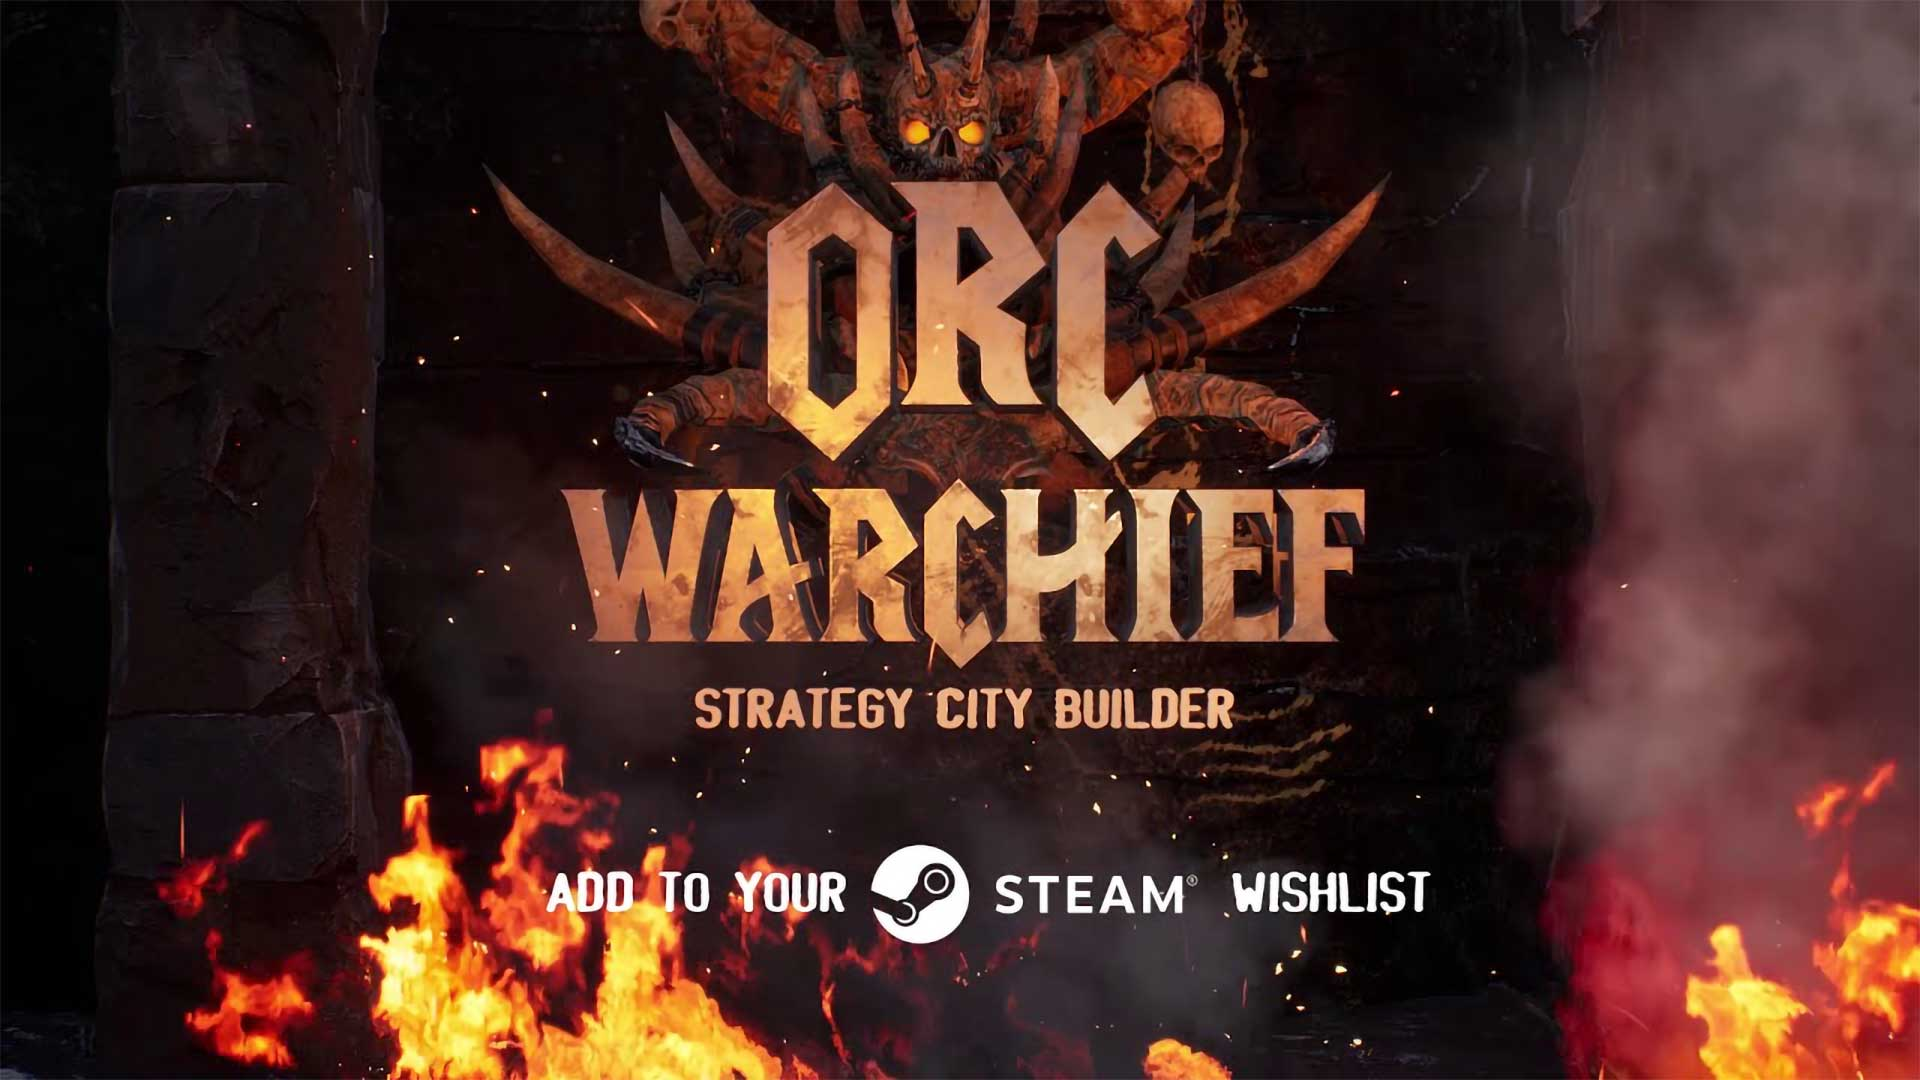 orc warchief strategy city builder